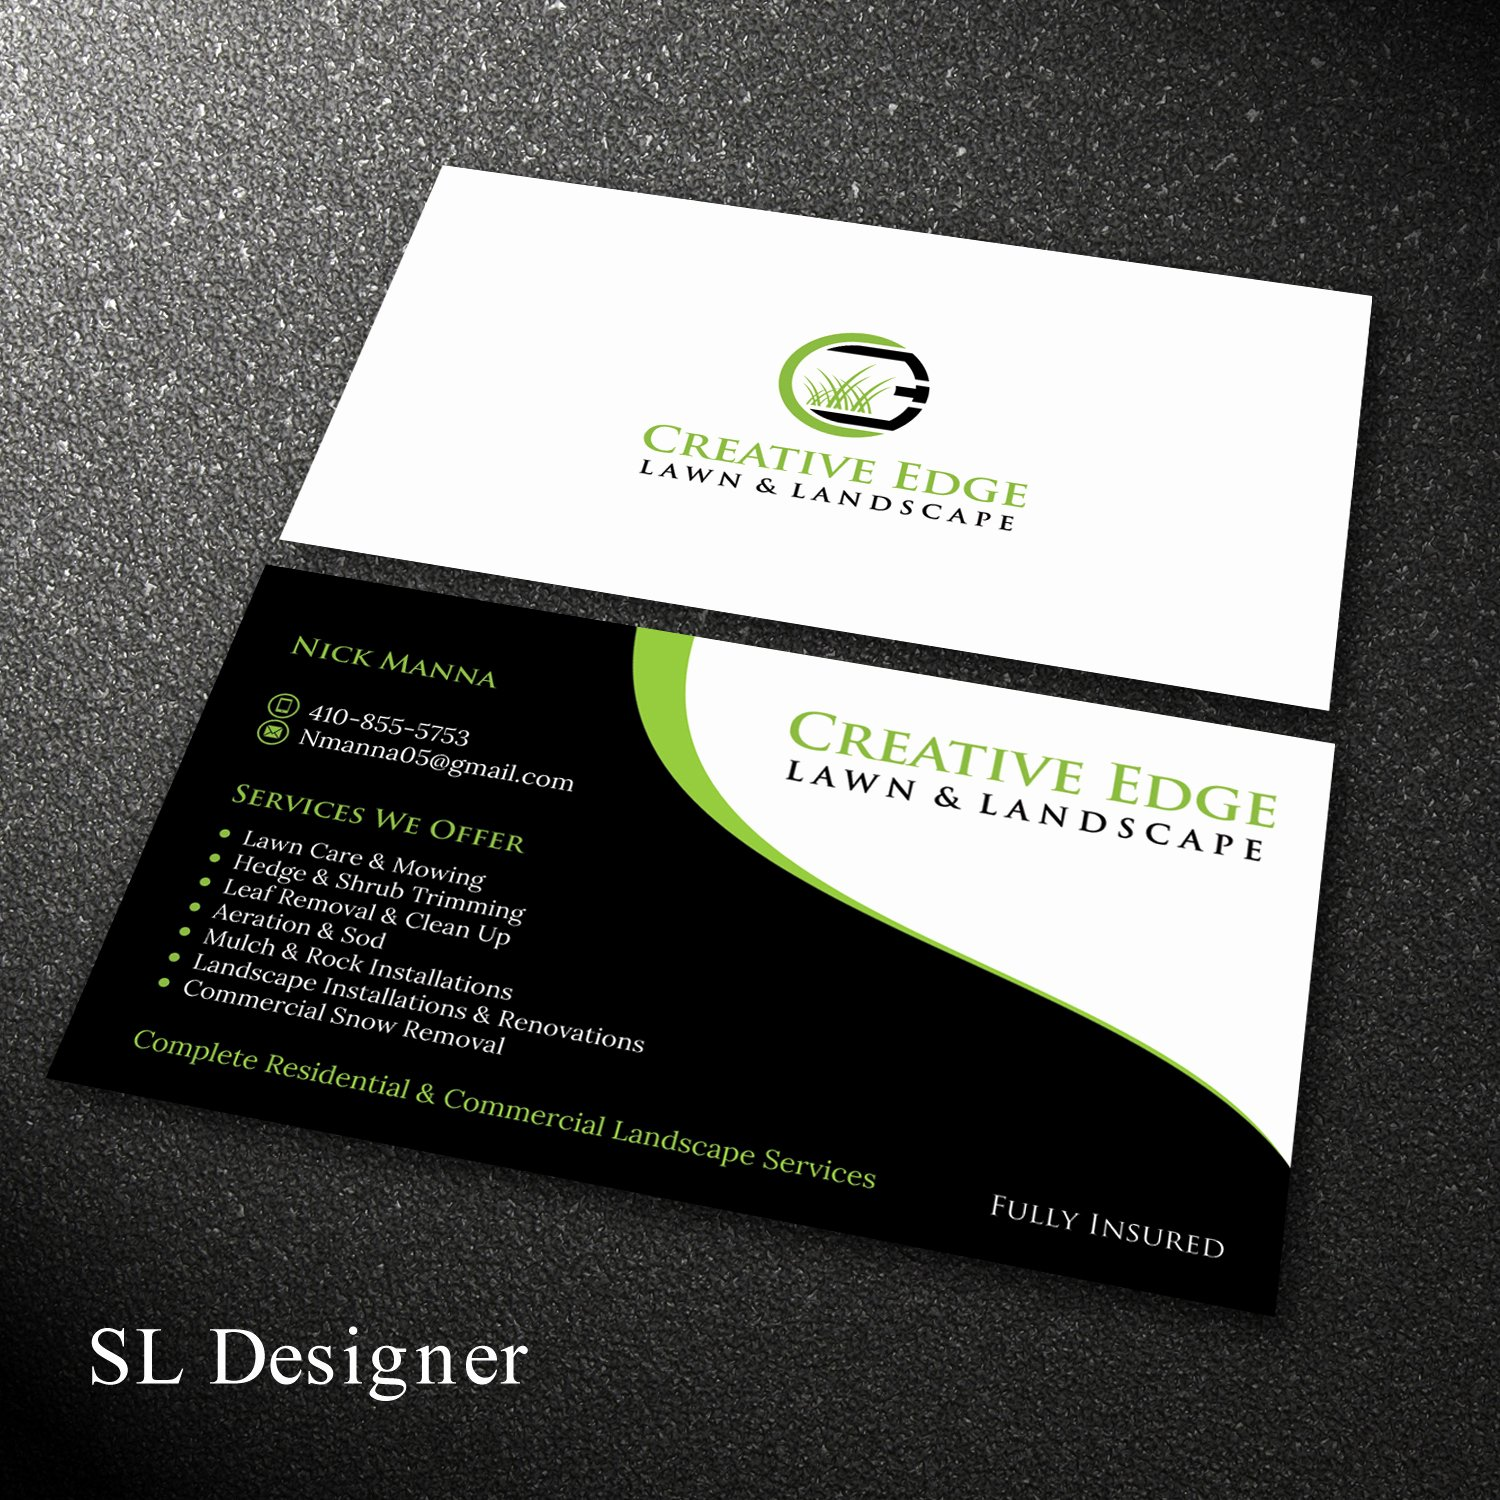 Landscape Design Business Cards Awesome Bold Serious Landscape Business Card Design for A